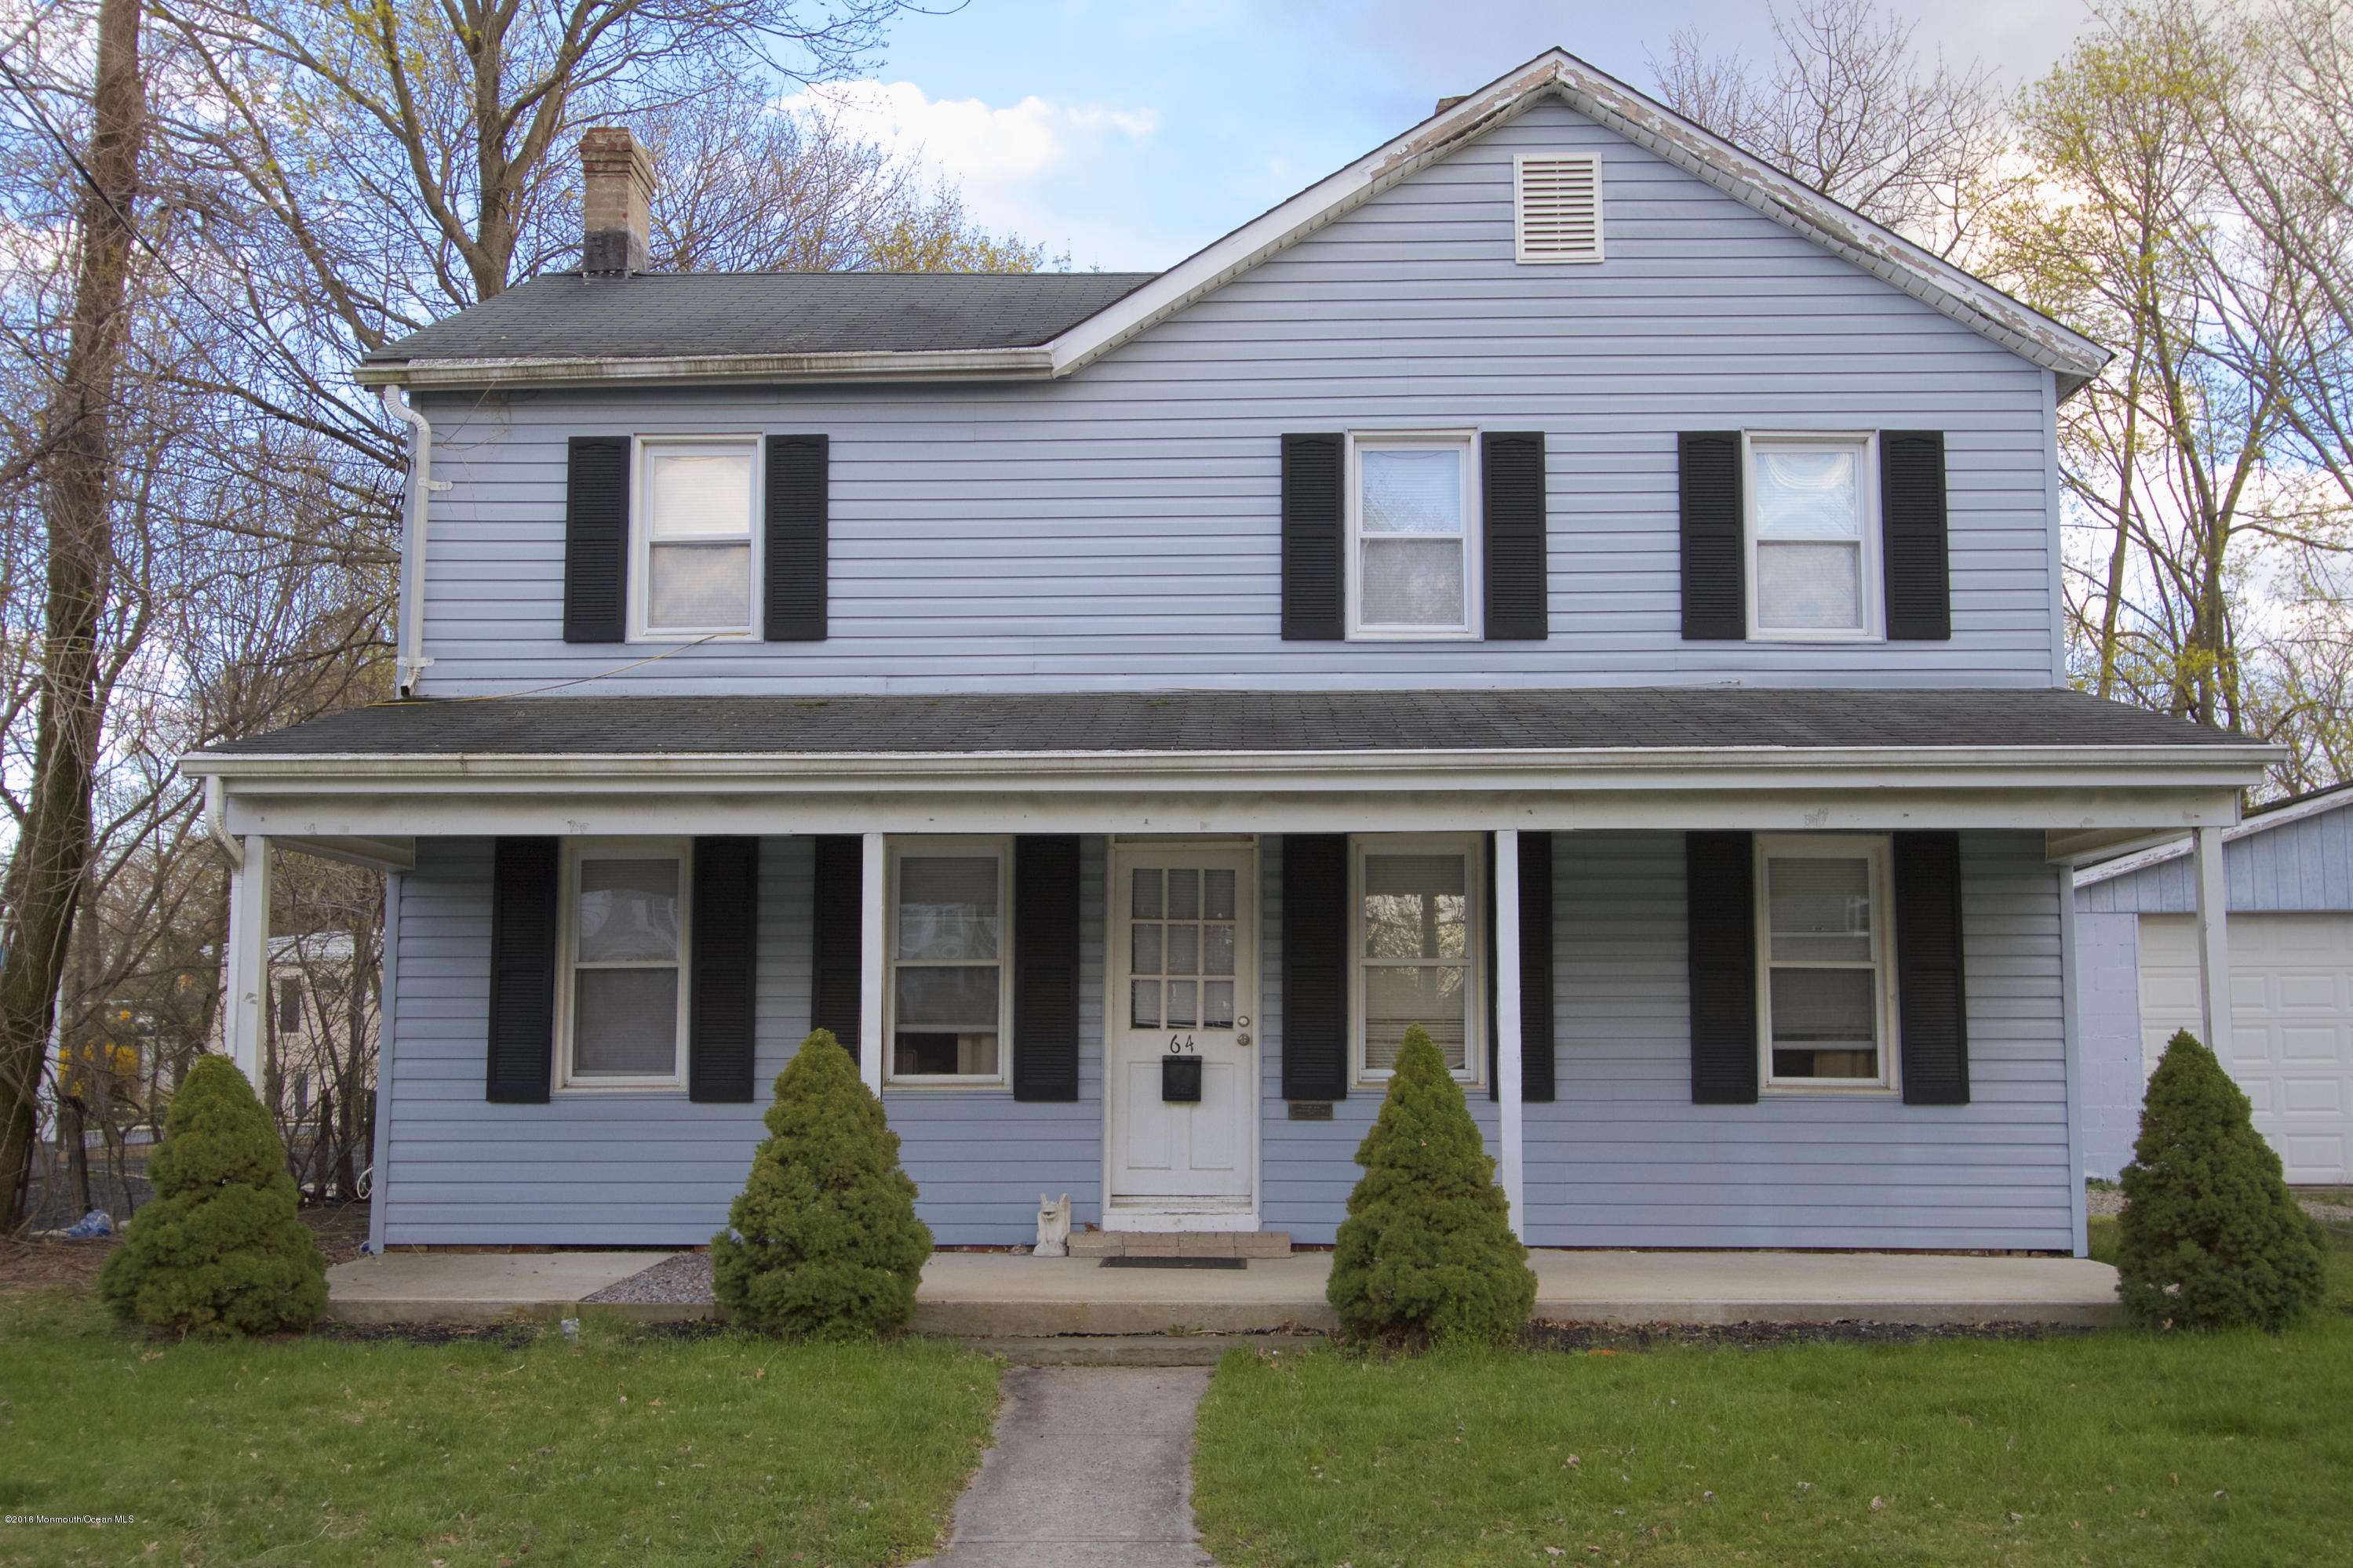 Photo of home for sale at 64 Throckmorton Avenue Avenue, Eatontown NJ